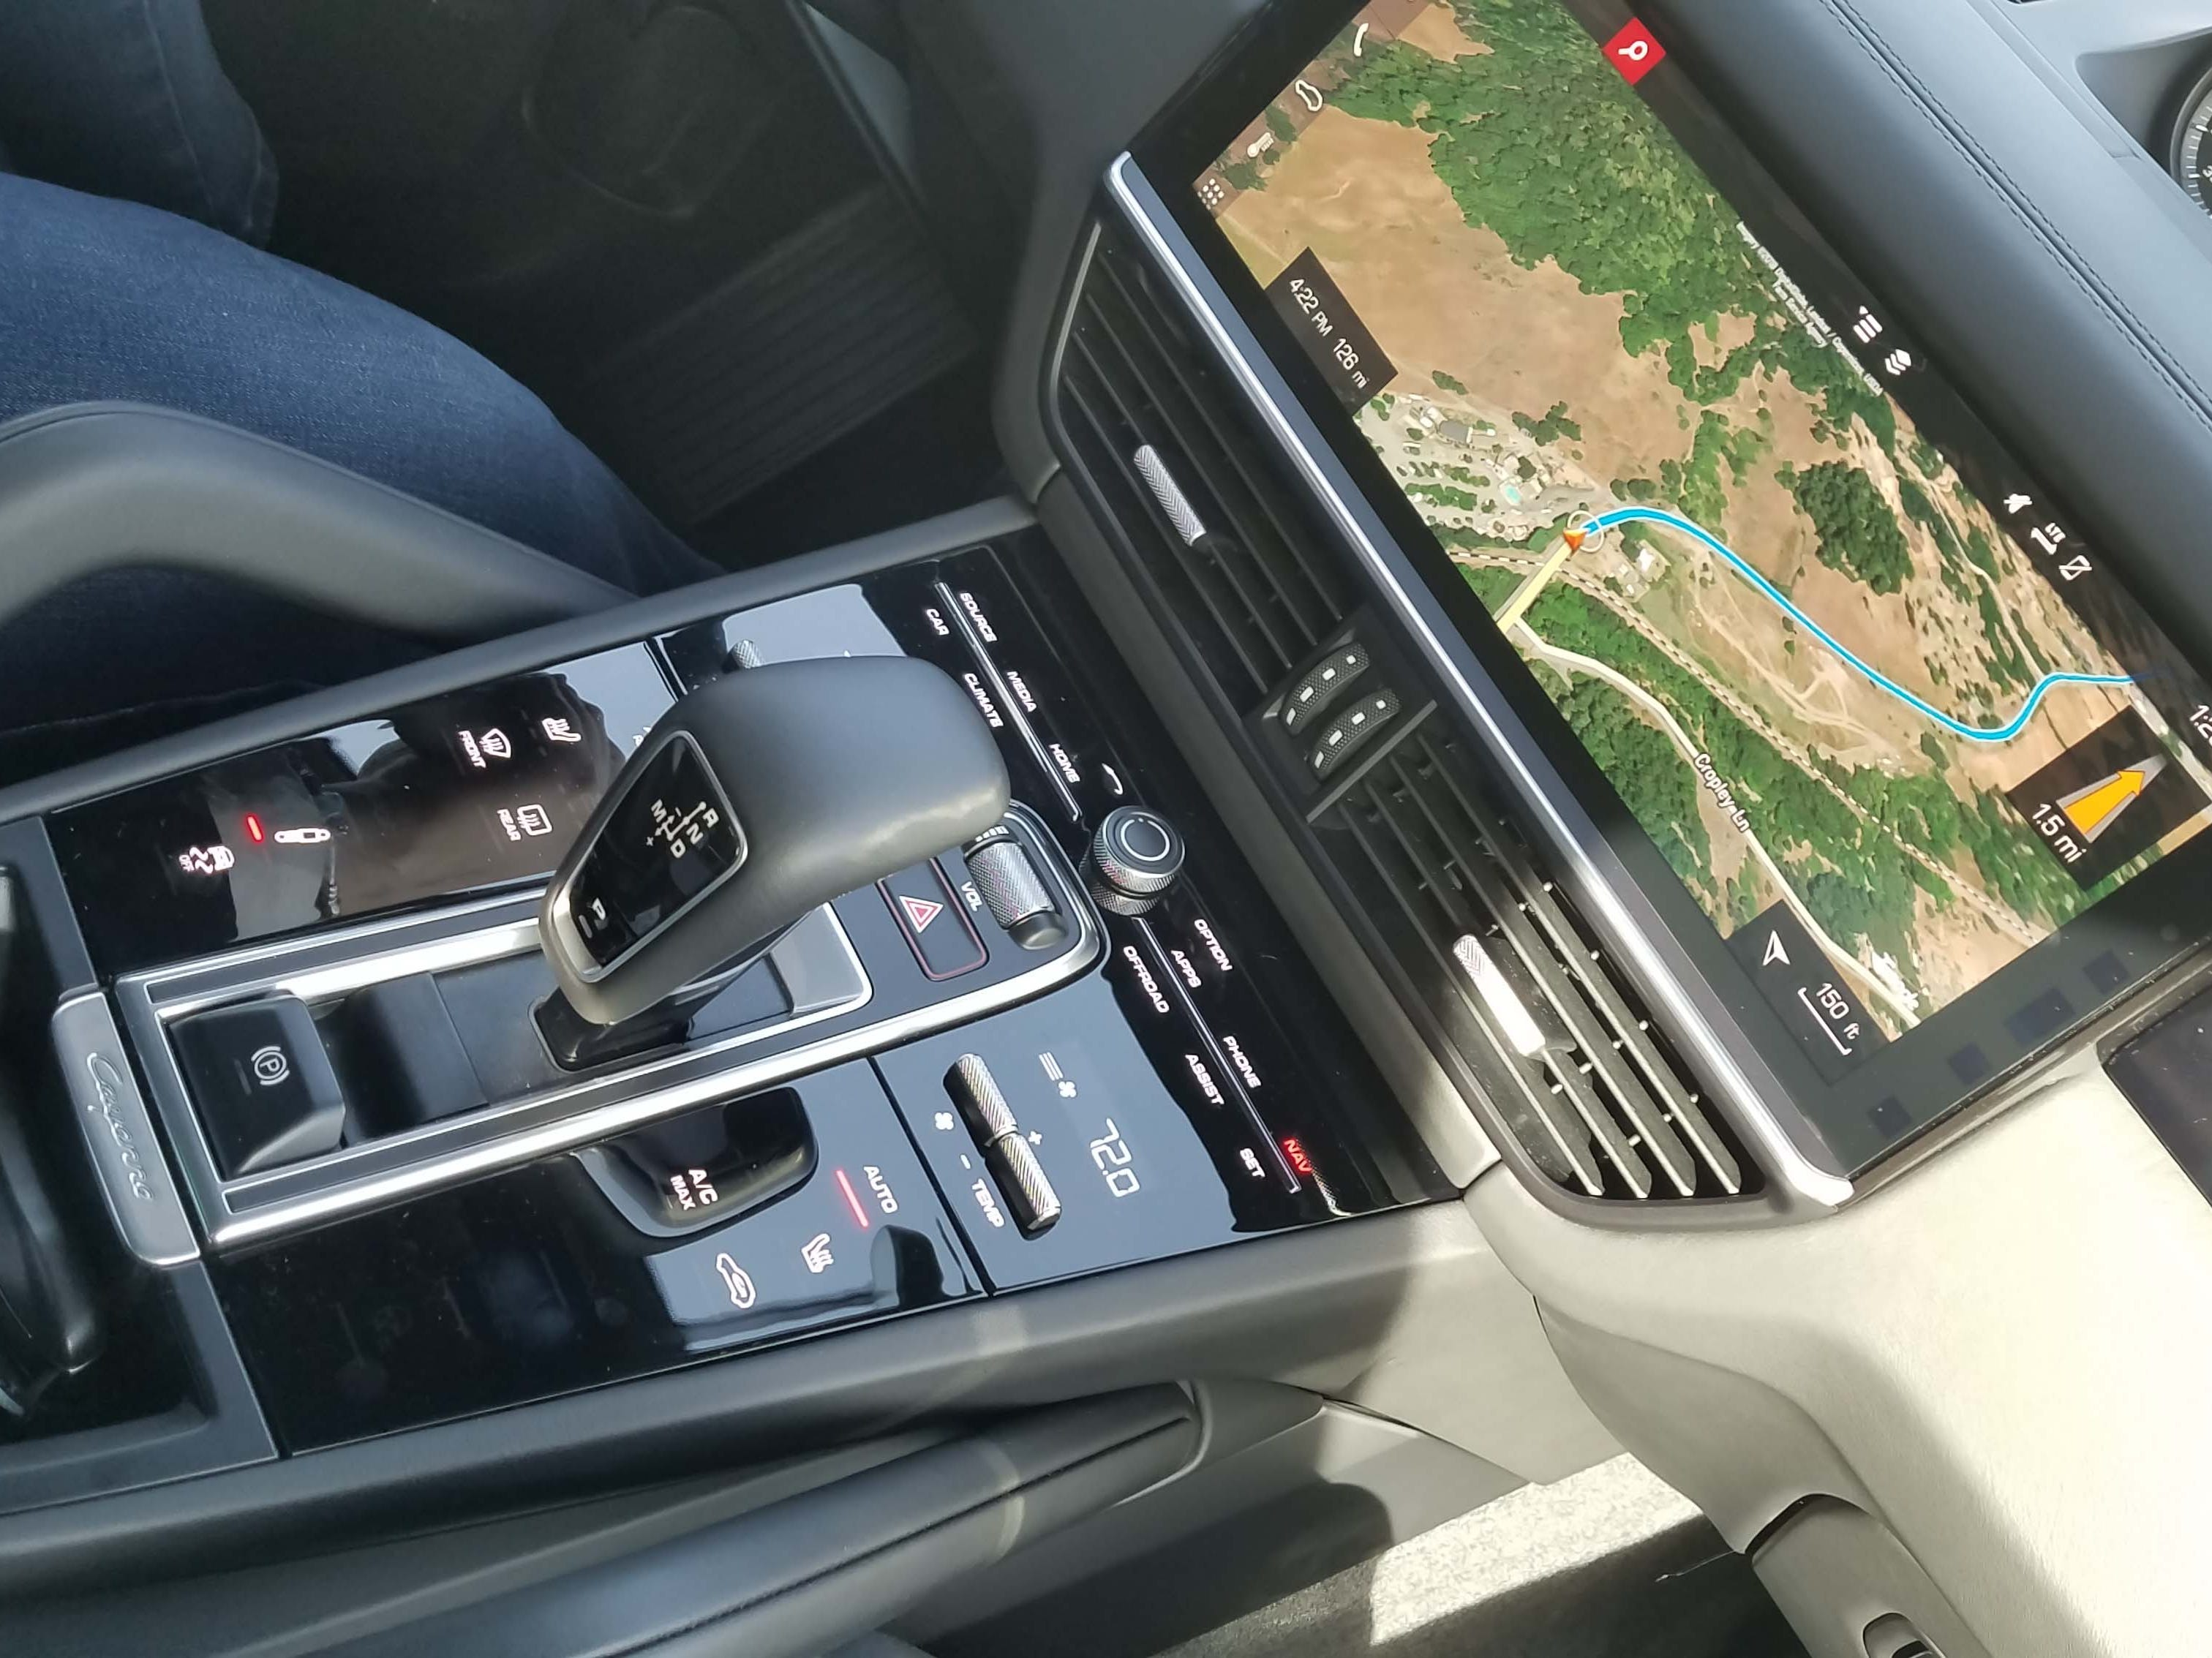 The console of the 2019 Cayenne is much improved over the Gen 2 model — but ergonomics suffer, with many features located out of view behind the monostable shifter.